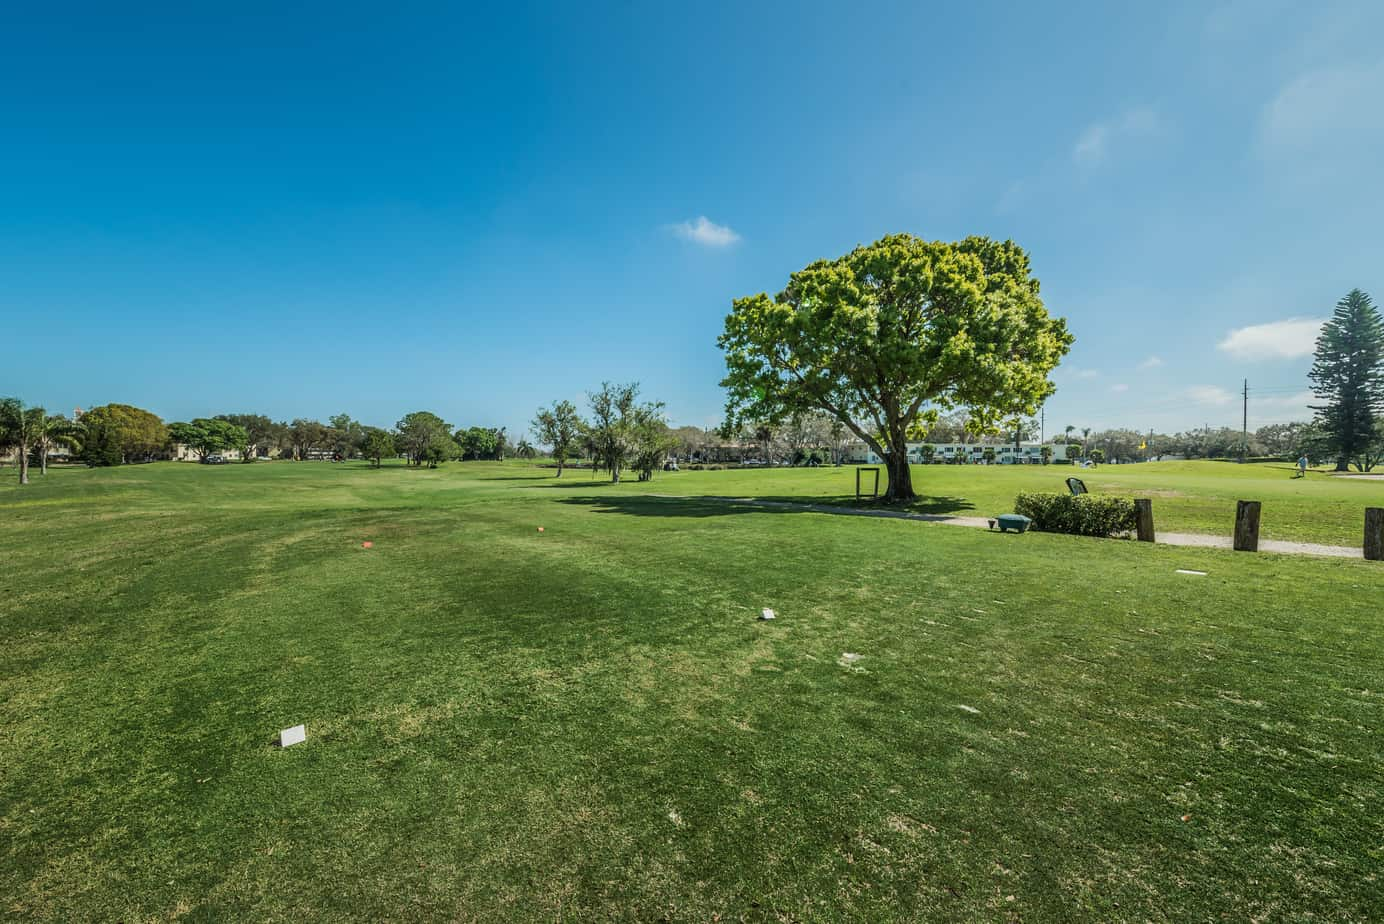 36-2285-Israeli-Dr-#17-Clearwater-Fl-33763-Golf Course2